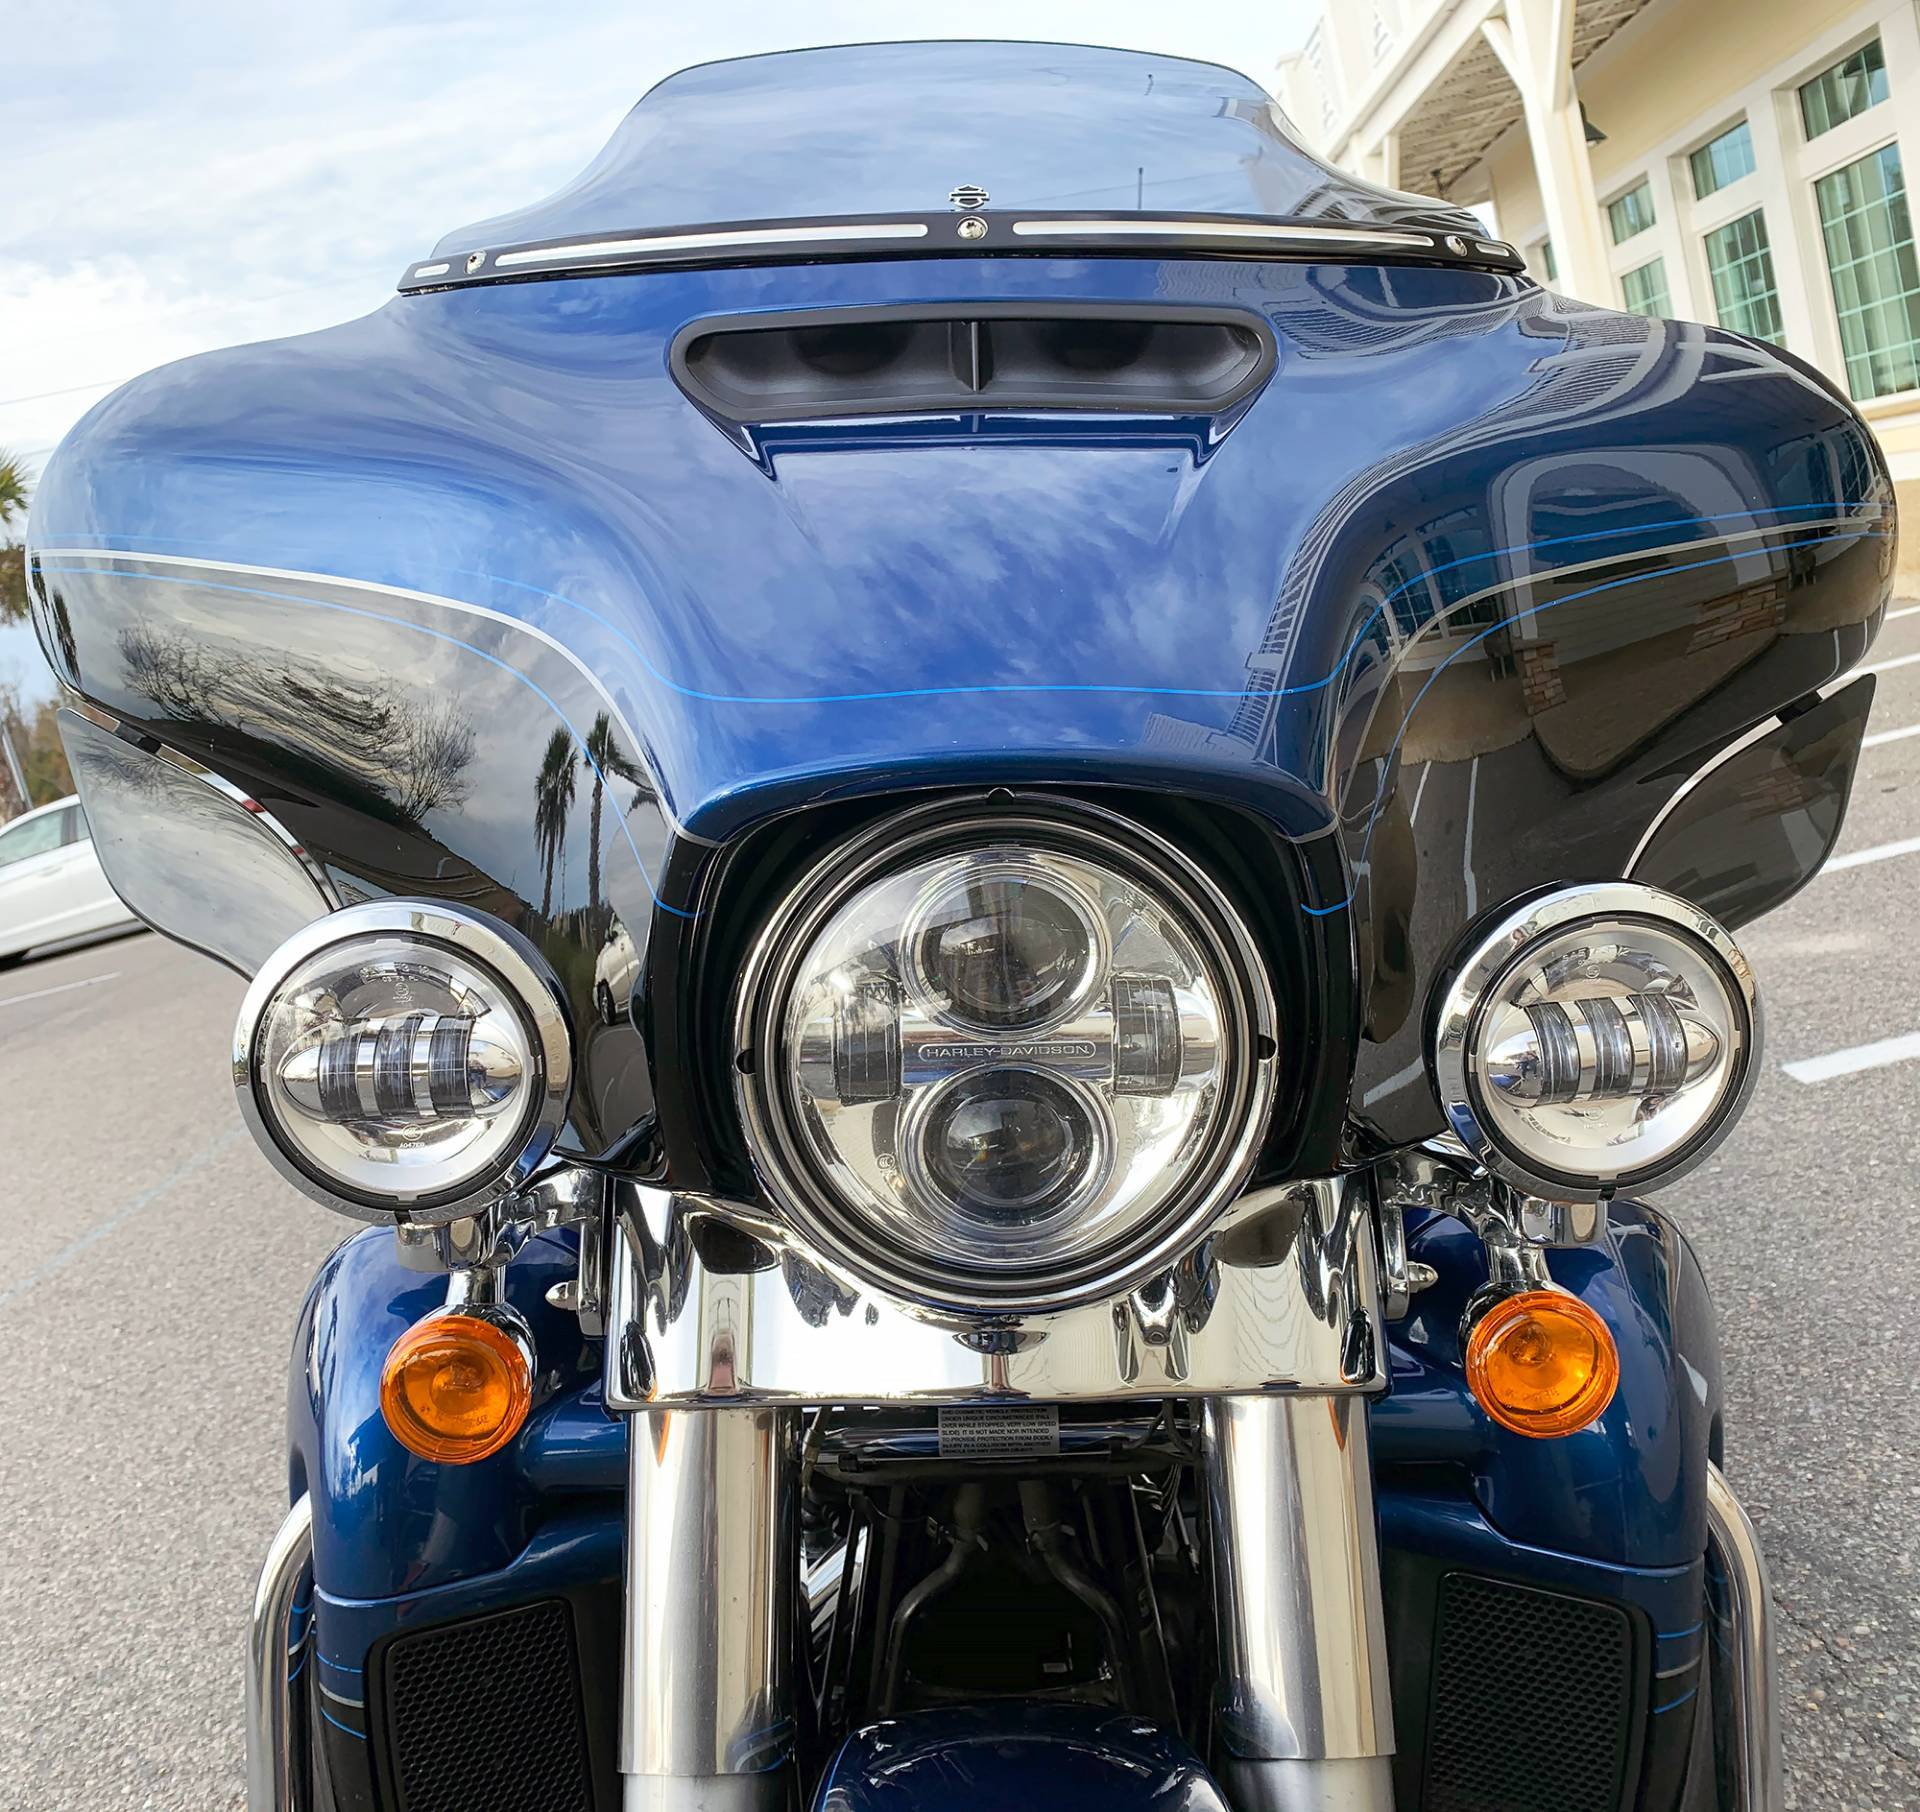 2018 Harley-Davidson Electra Glide® Ultra Limited® Anniversary in Jacksonville, North Carolina - Photo 16